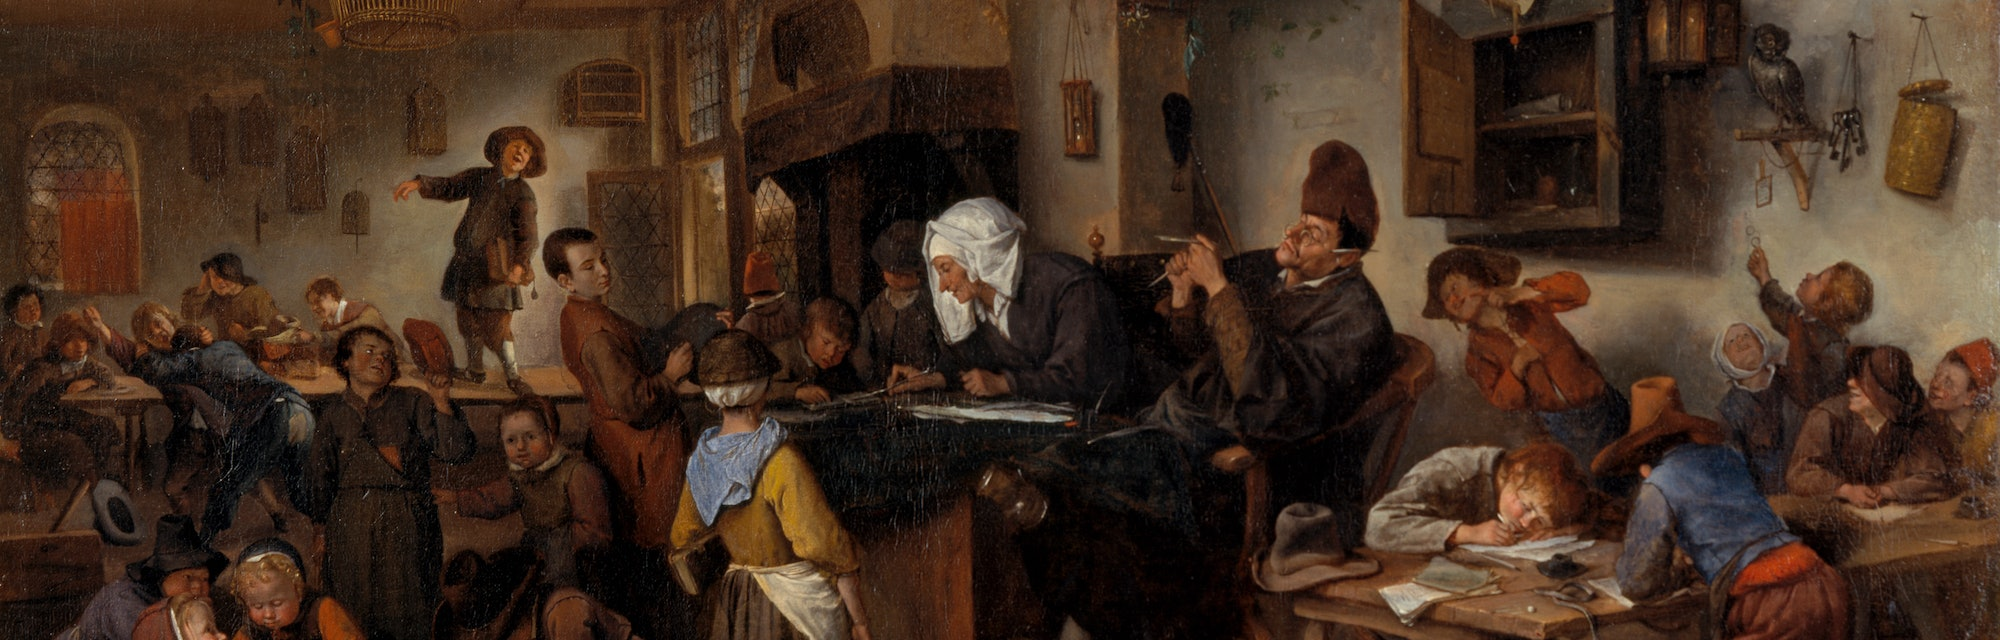 A School for Boys and Girls, by Jan Steen, 1670. Oil on canvas. Purchased by Private Treaty with the...